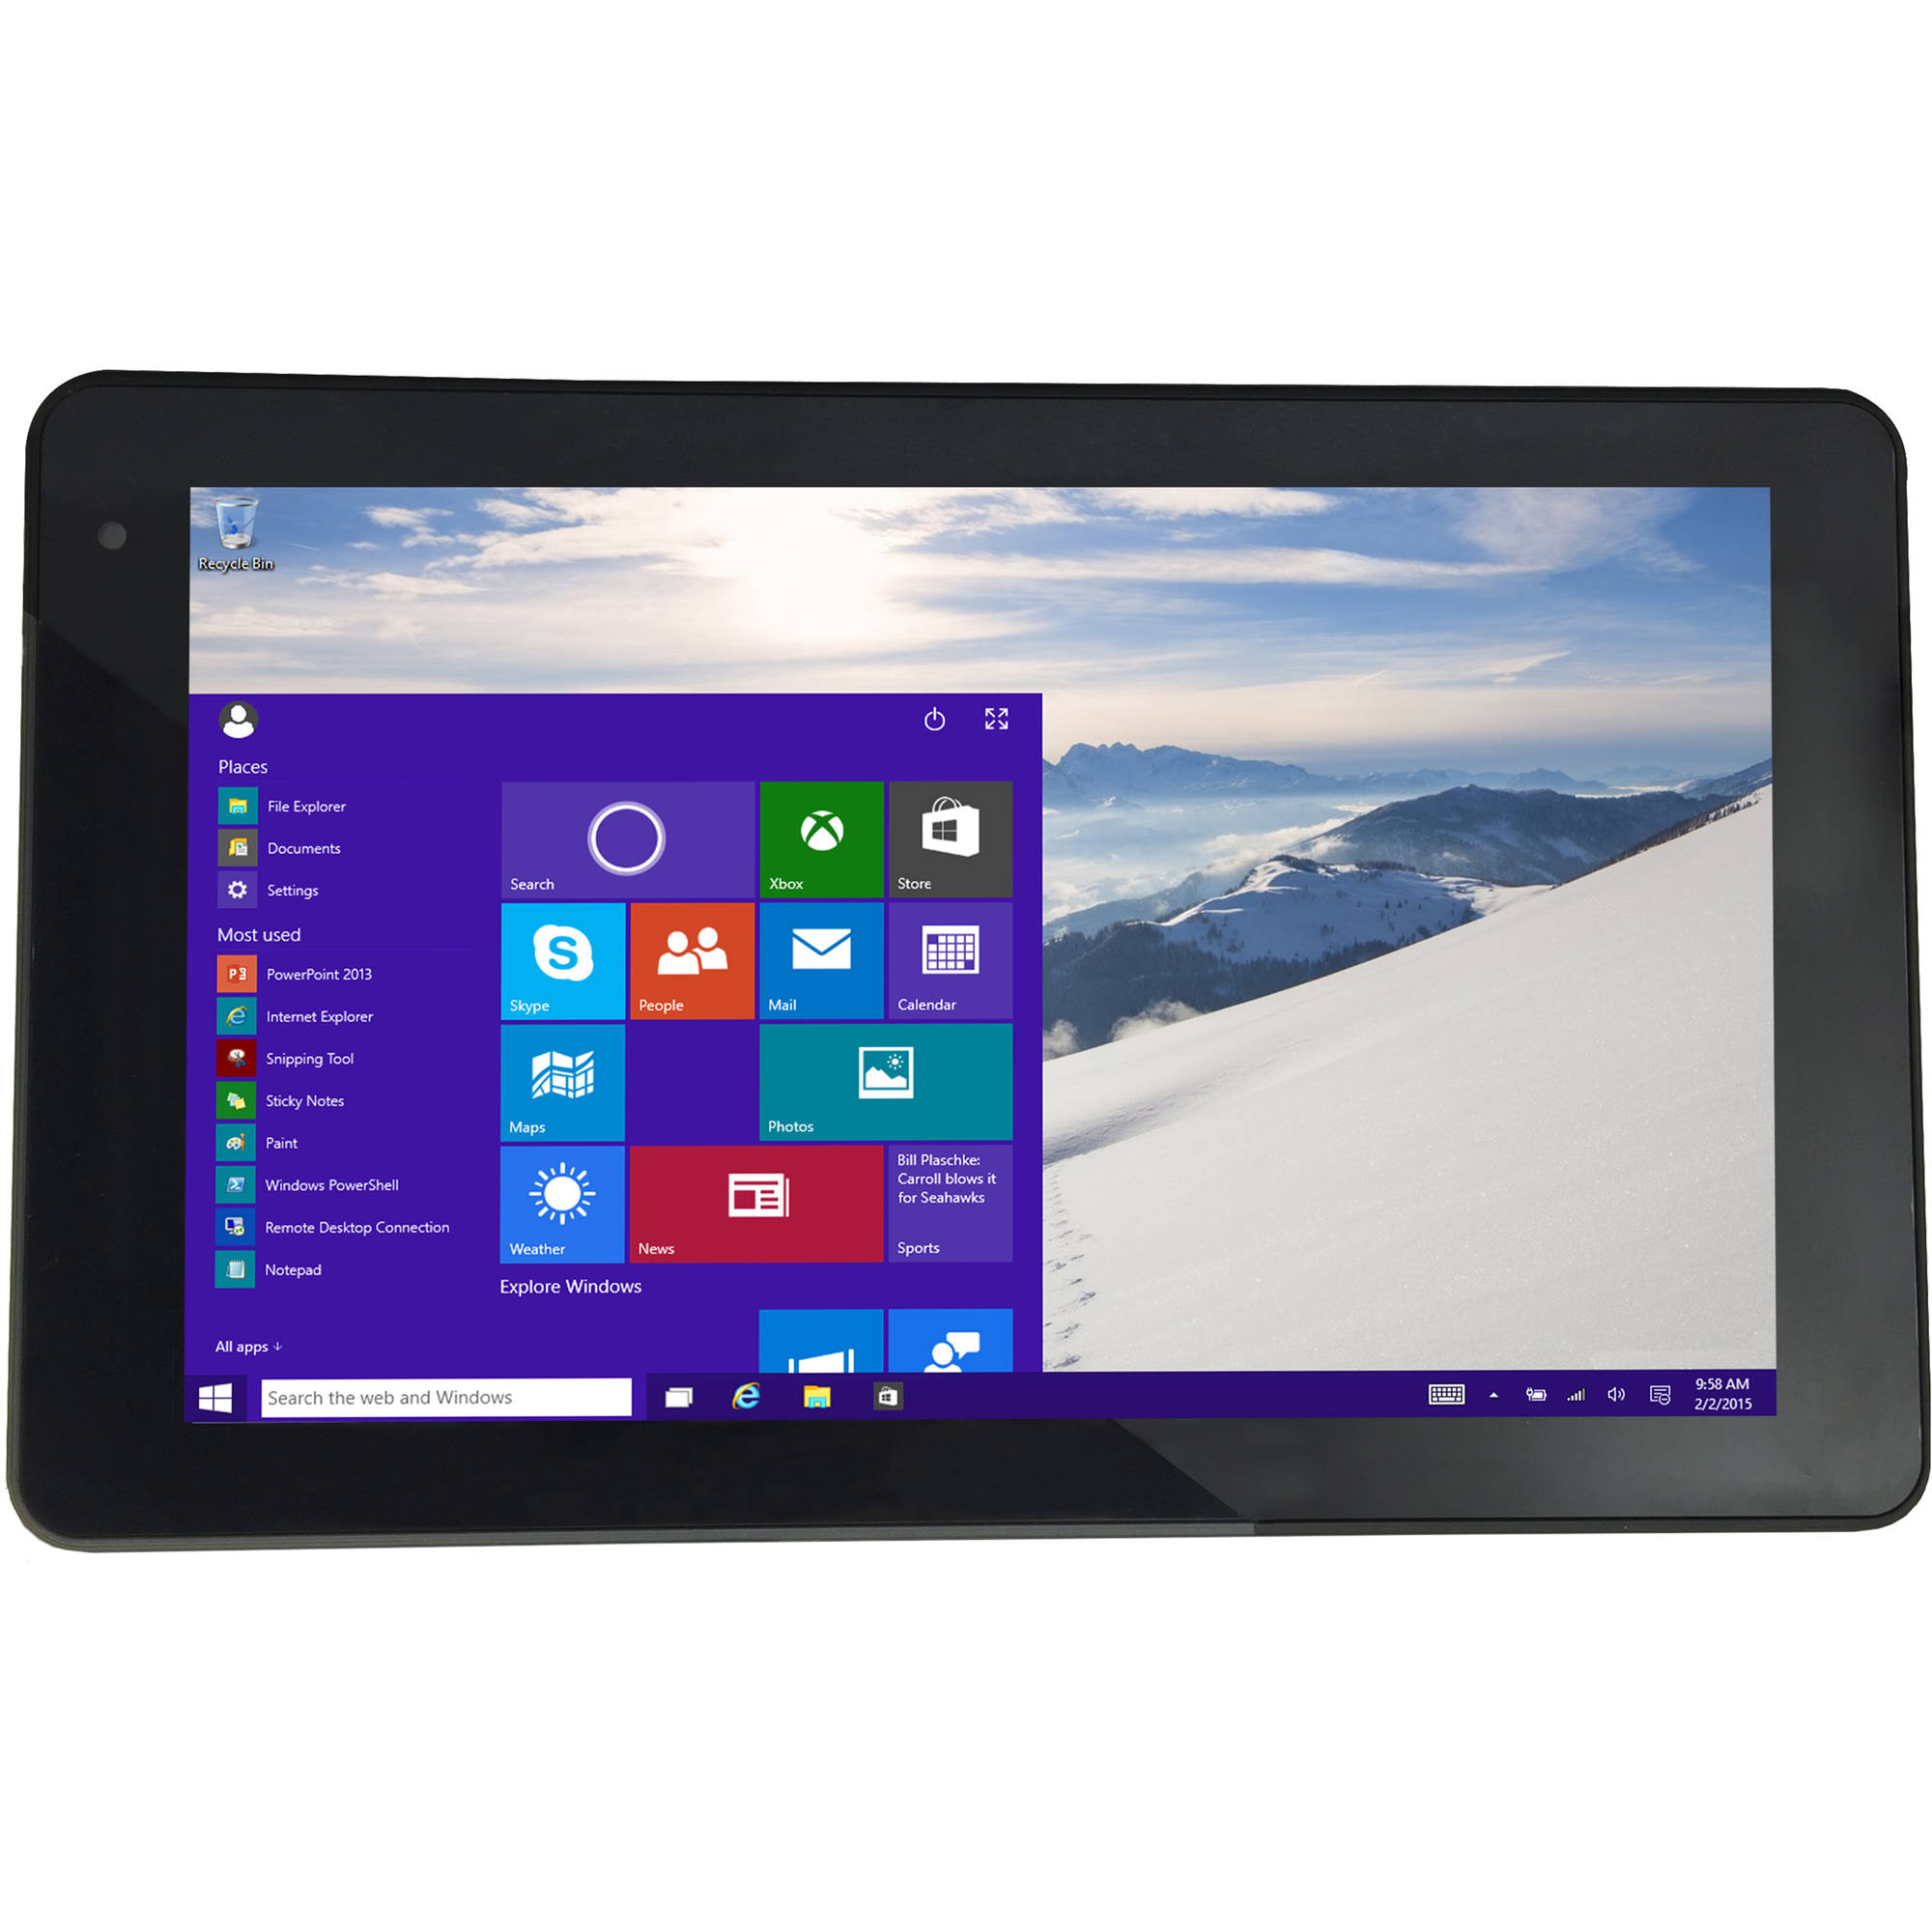 "Vulcan Omega 8.95"" Tablet 16GB Intel Atom Z3735G Quad-Core Processor Windows 10 Operating System"